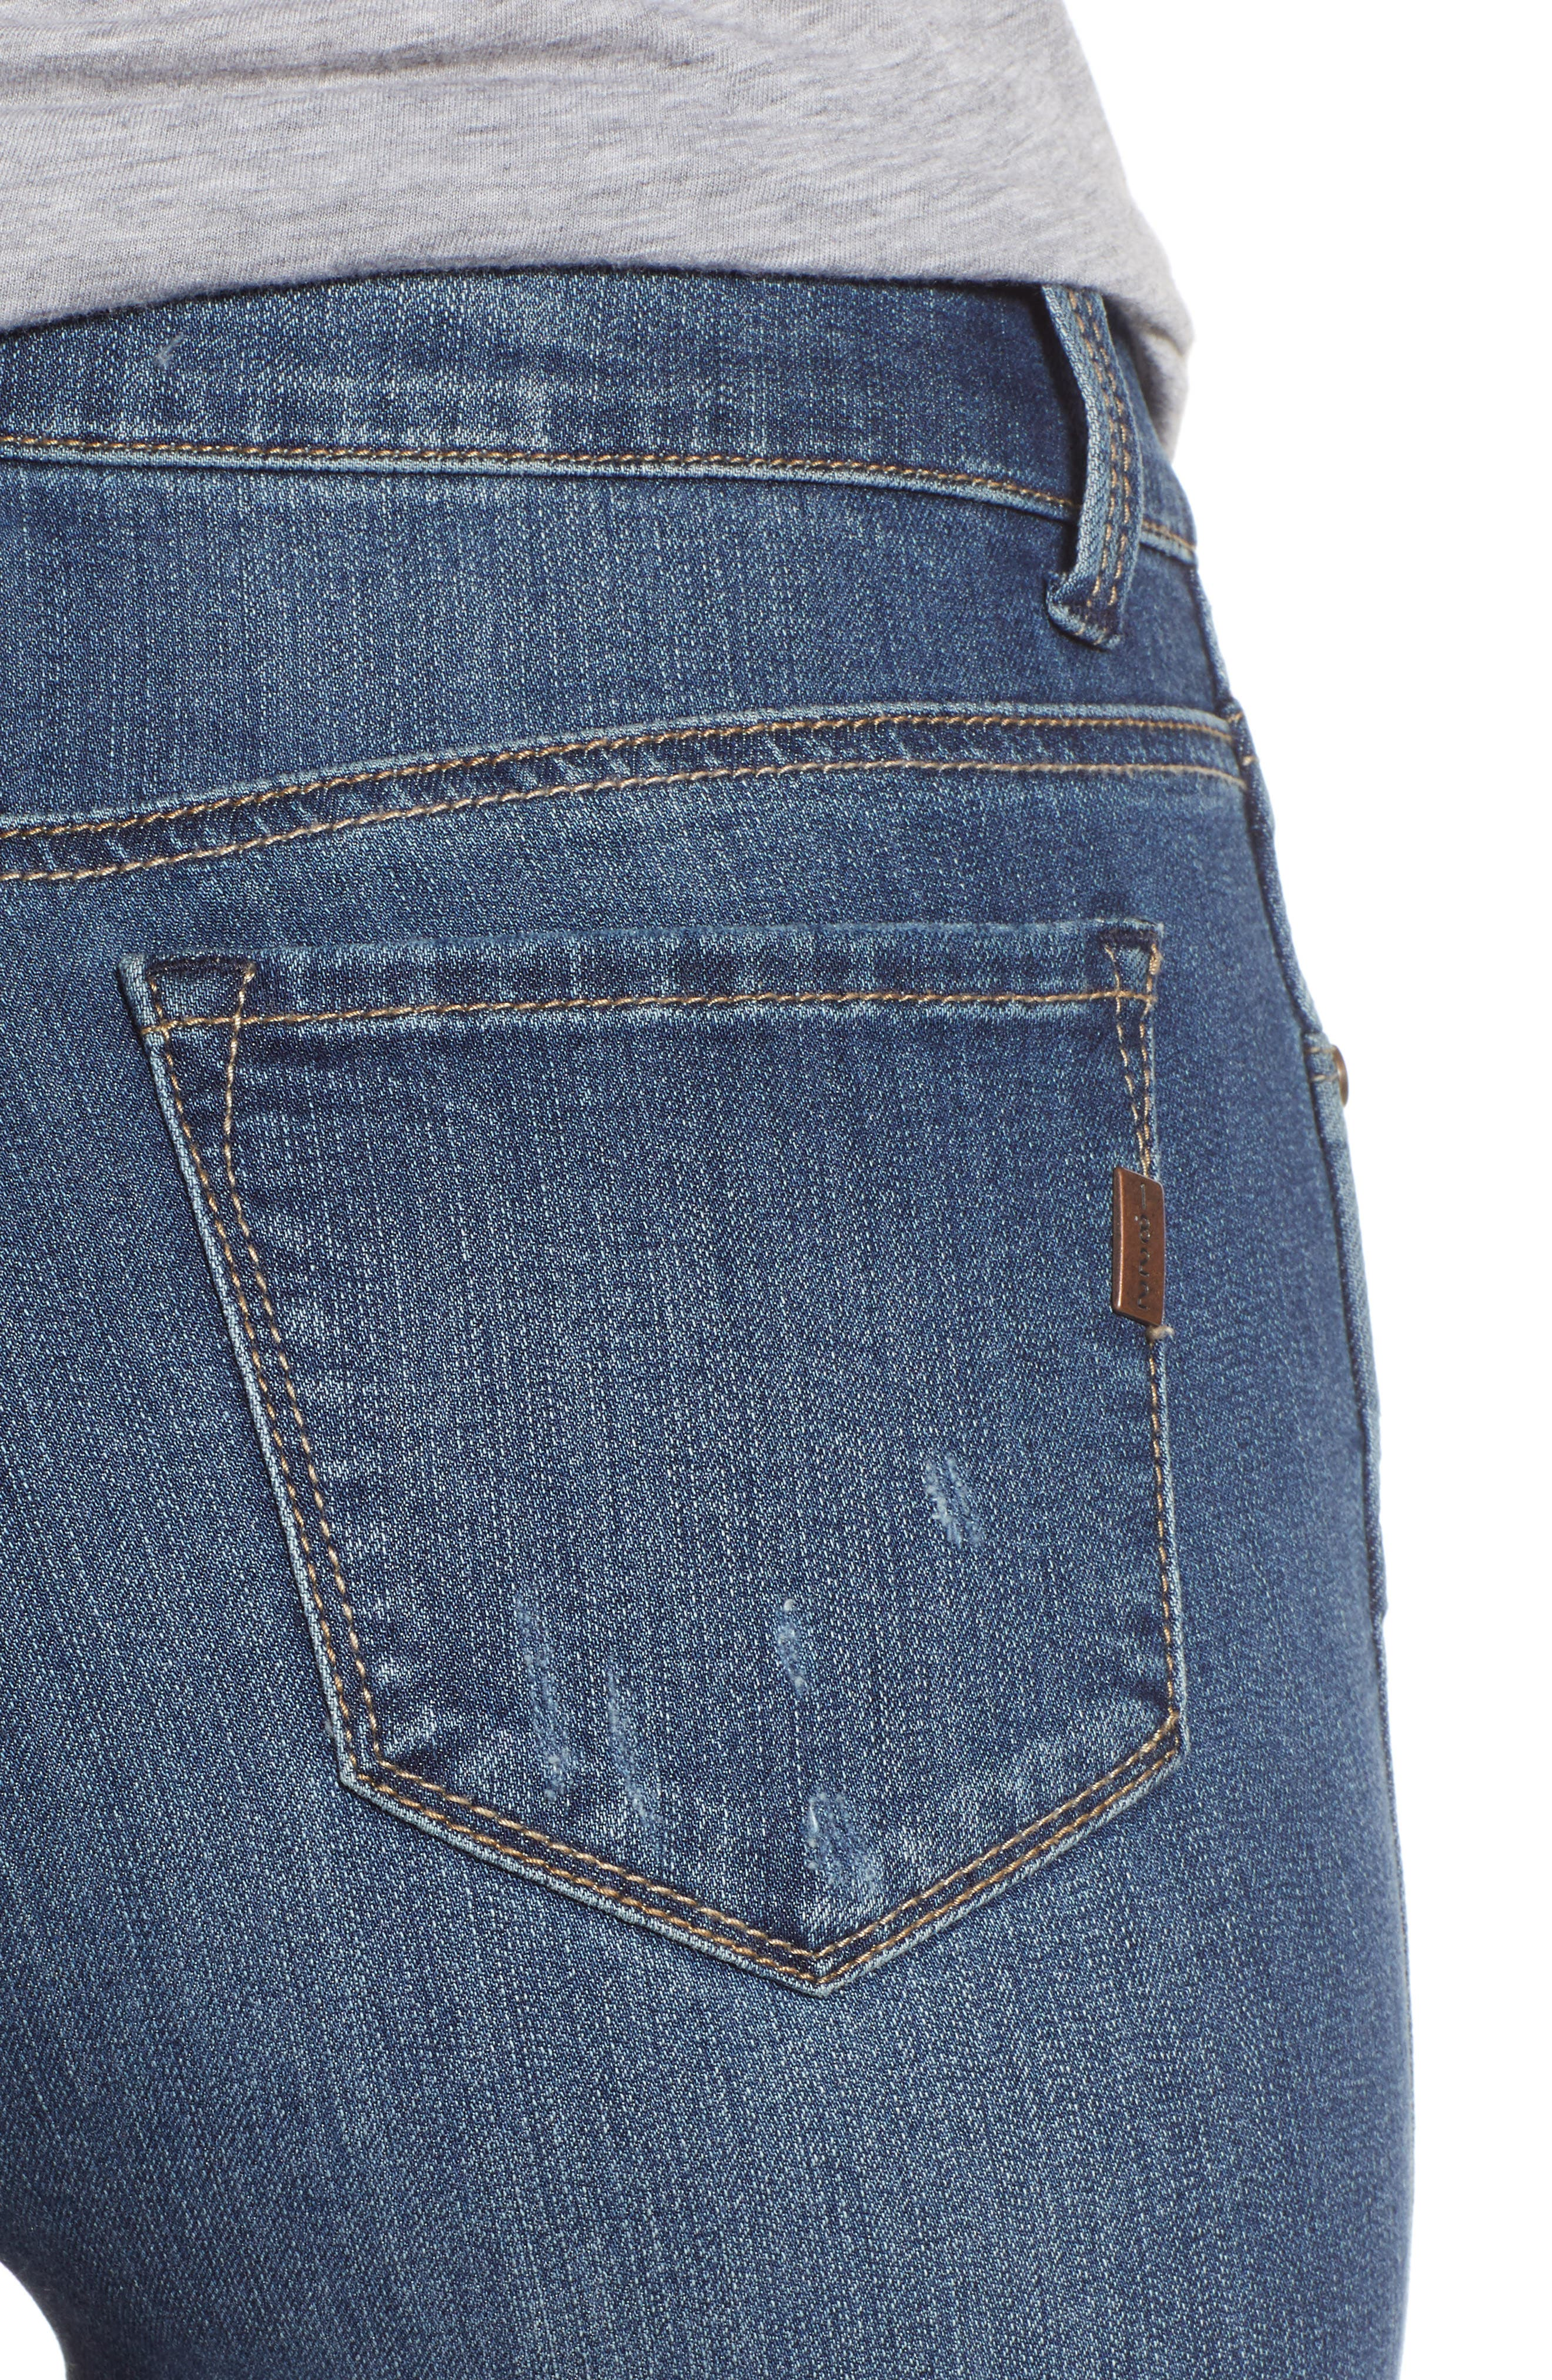 Distressed Skinny Jeans,                             Alternate thumbnail 4, color,                             SUBLIME